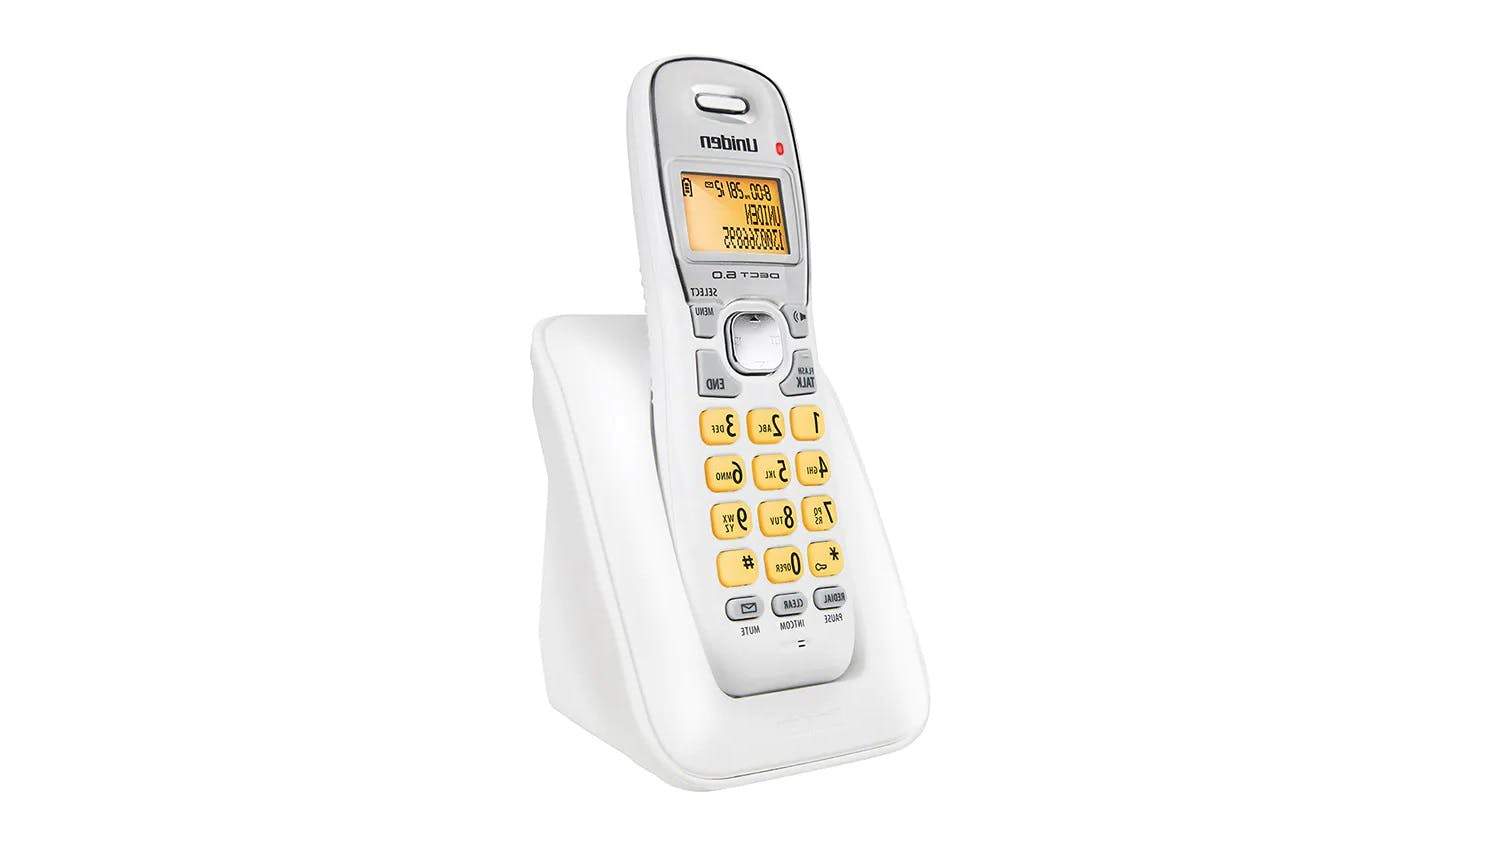 Uniden DECT 1715 Single Handset Cordless Phone - White